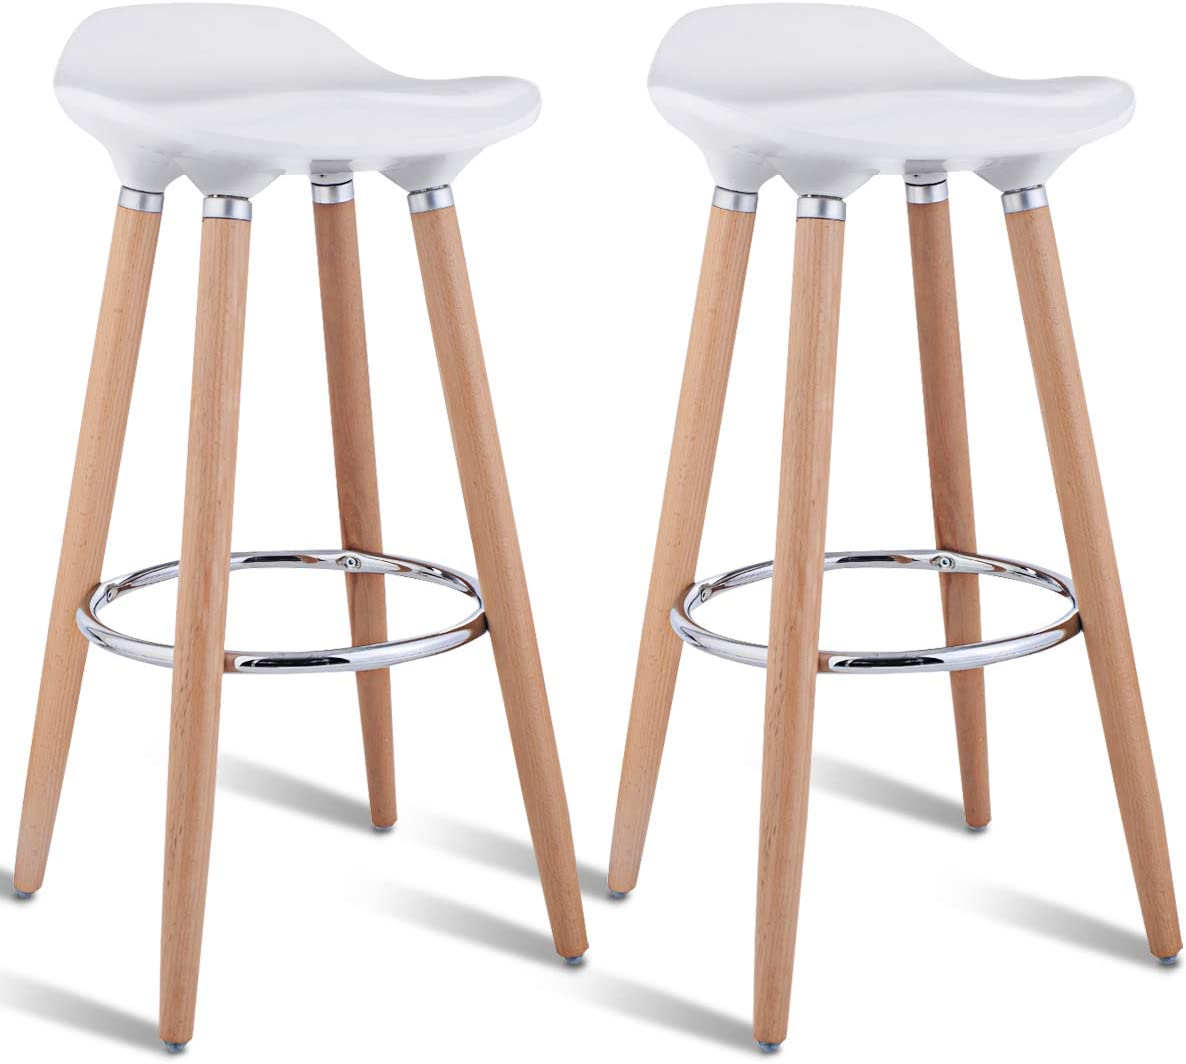 COSTWAY Barstools Set of 2, Modern Comfortable Armless Bar Stool, Counter Height Bistro Pub Side Stools, Backless Barstools with Wooden Legs, for Home Kitchen White